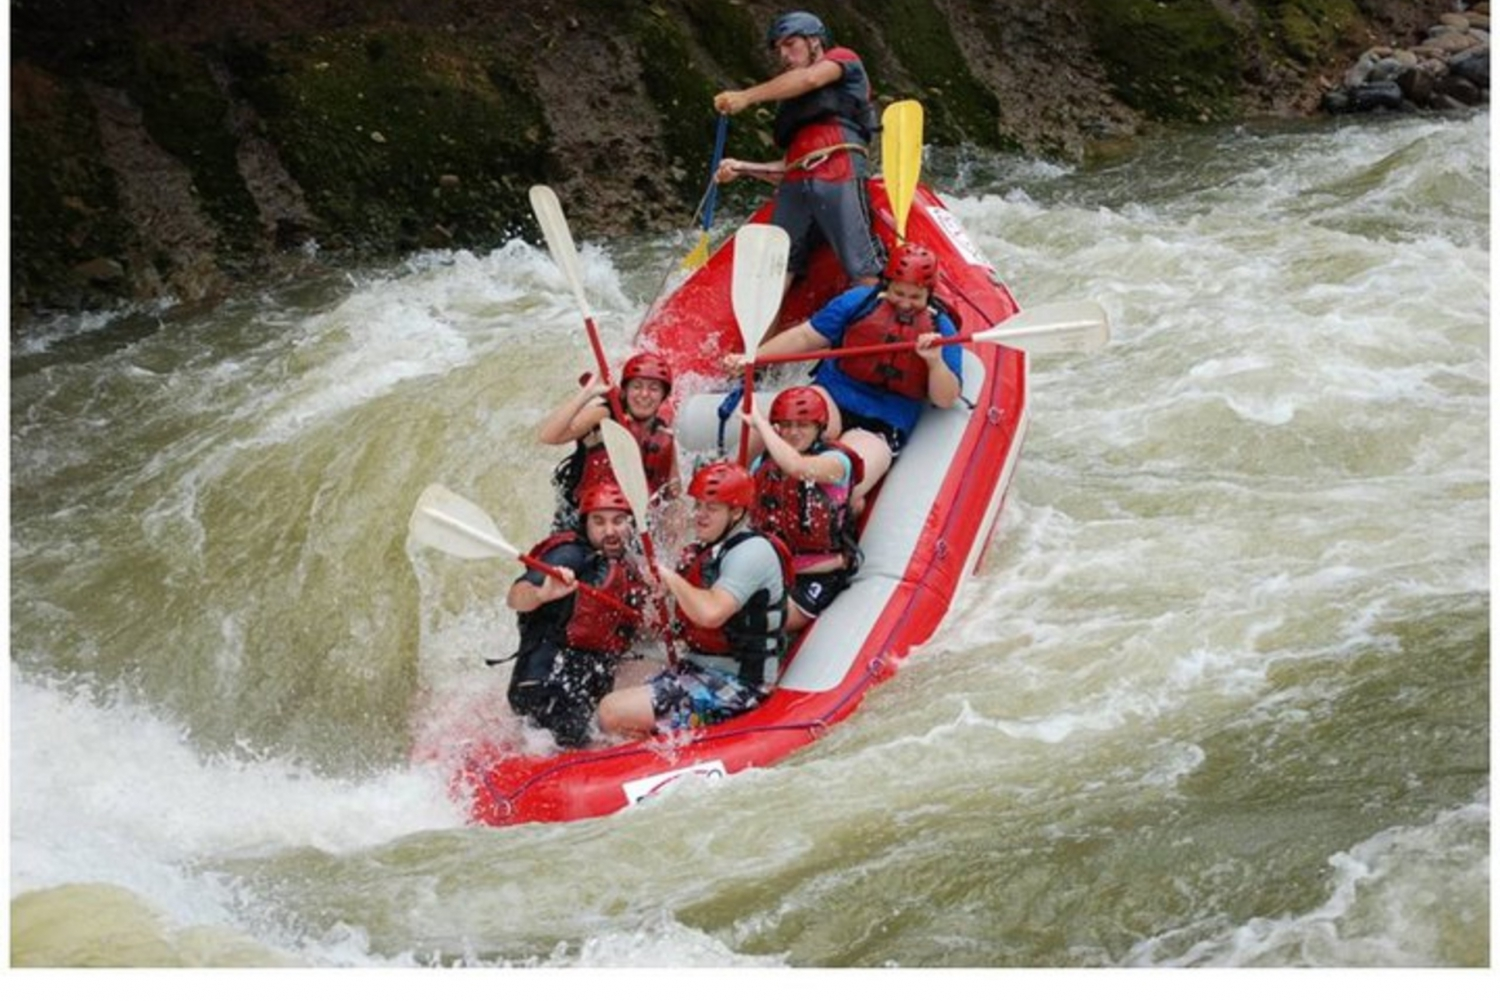 San Jose to La Fortuna: Rafting on the Sarapiquí River